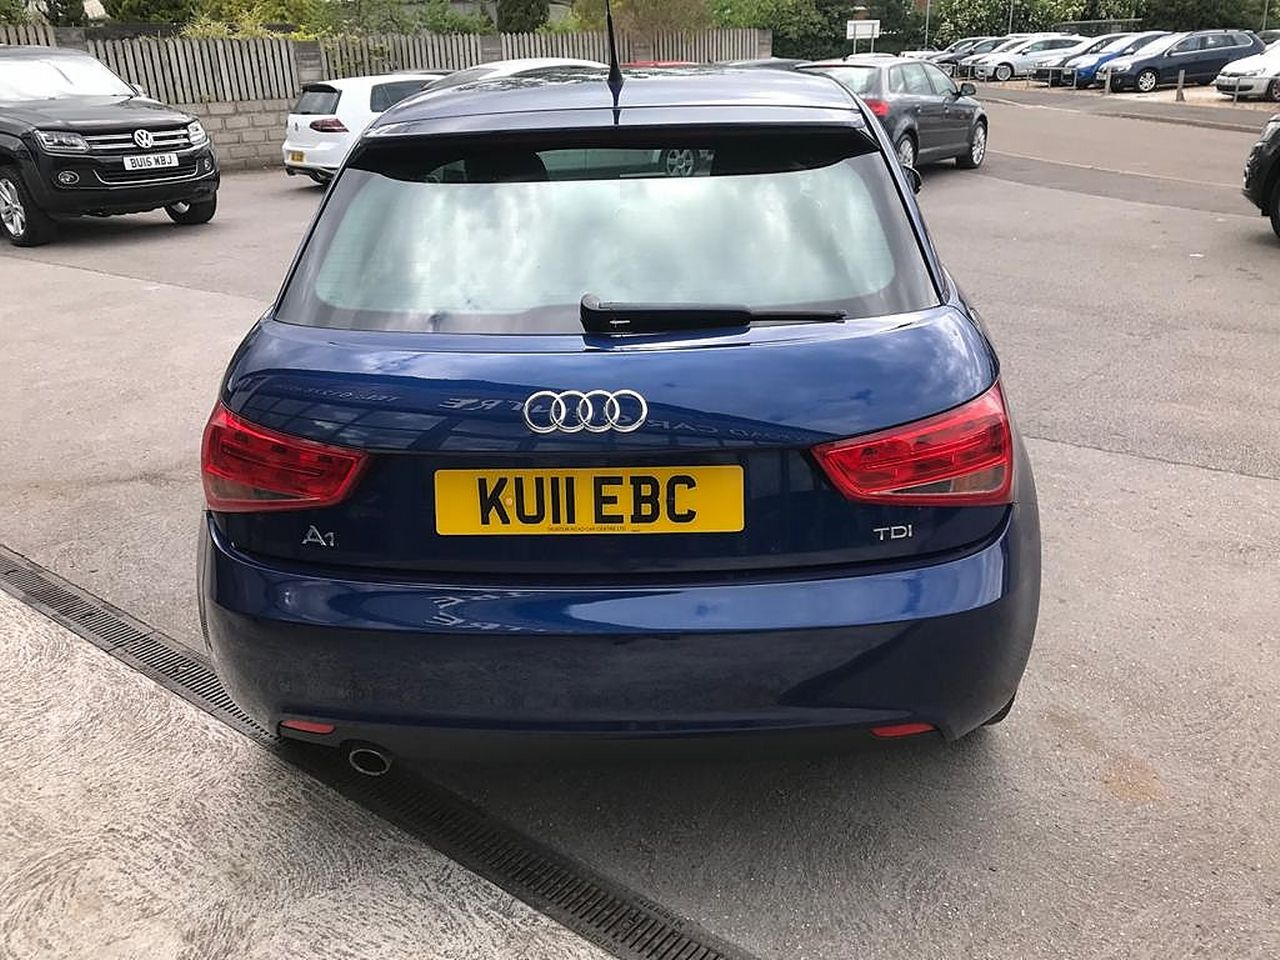 2011 AUDI A1 1.6 TDI Sport 105PS - Picture 4 of 19